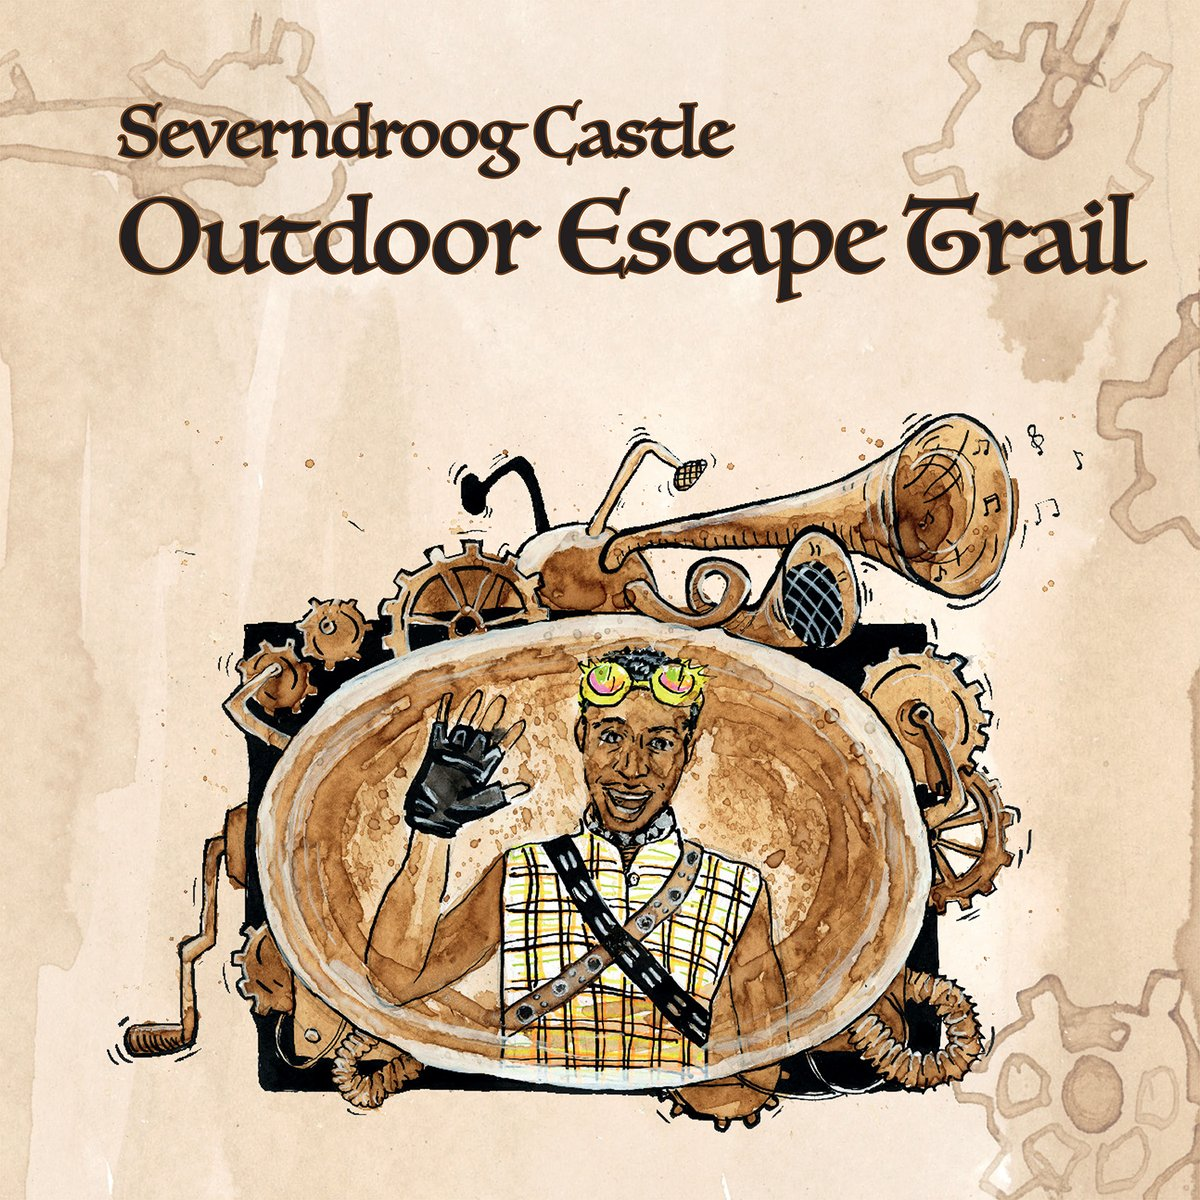 #SouthLondon families, it's time for an #outdooradventure! Count Silvester of @Severndroog needs your help! Complete a series of missions through Castle Woods using an intriguing landmarks map+ intergalactic travelling guide! Get a Mission Pack from @TerraceTearoom & off you go! https://t.co/Y6GdQ7YhSs